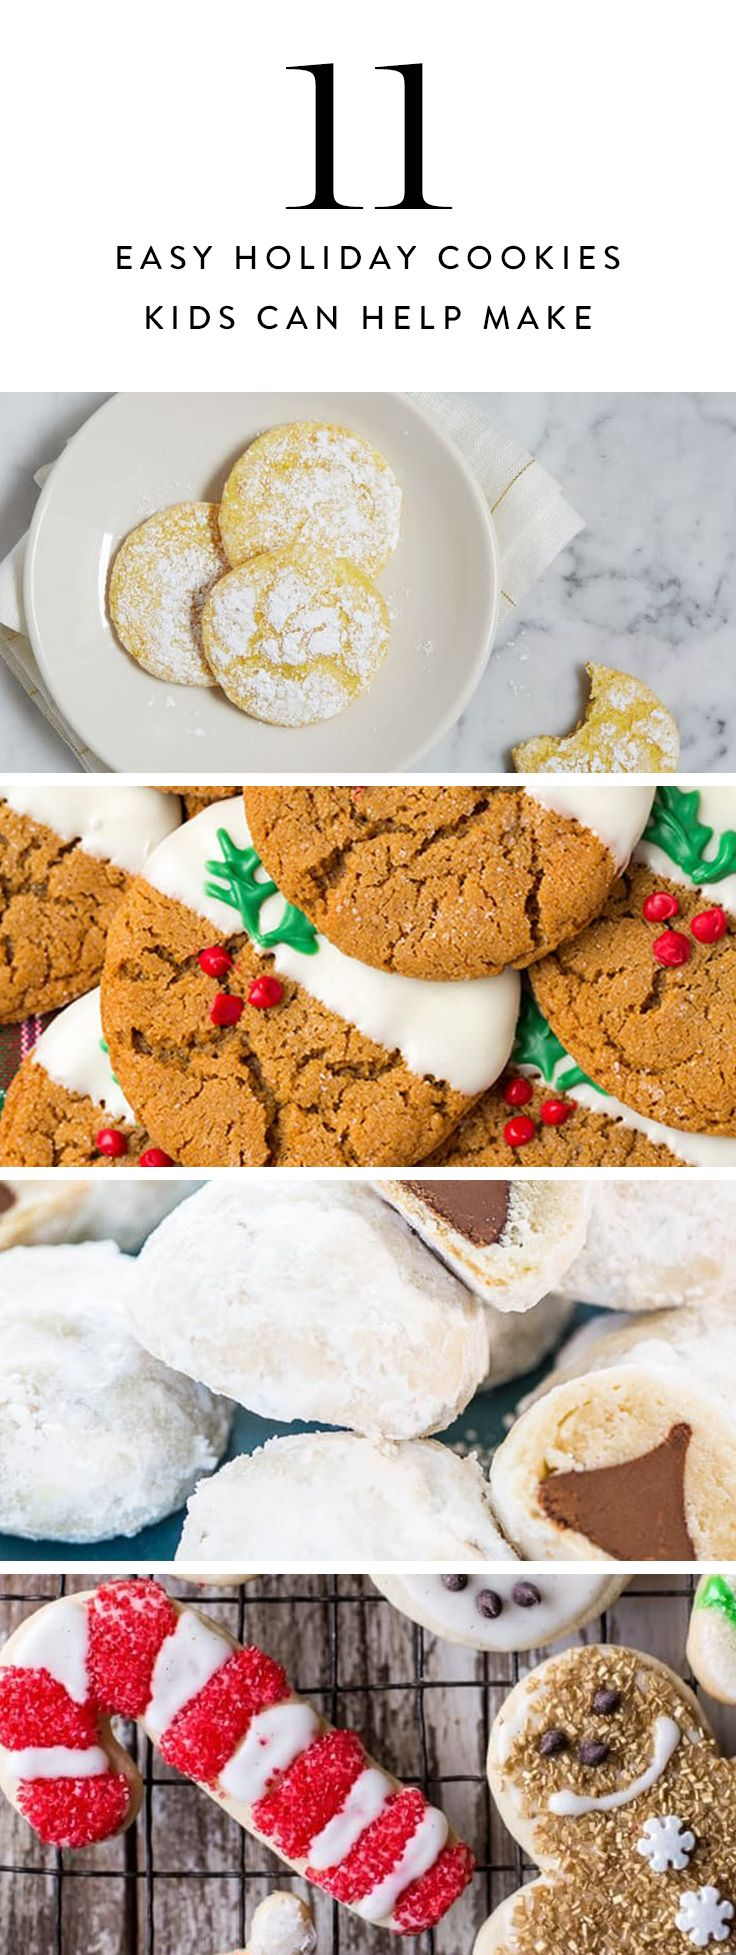 It's the most wonderful time of the year…which means you have approximately 2,896 batches of cookies to bake before New Year's. Instead of shooing everyone out of the kitchen, try these 11 easy kid-friendly recipes the whole family will be thrilled to help you make.